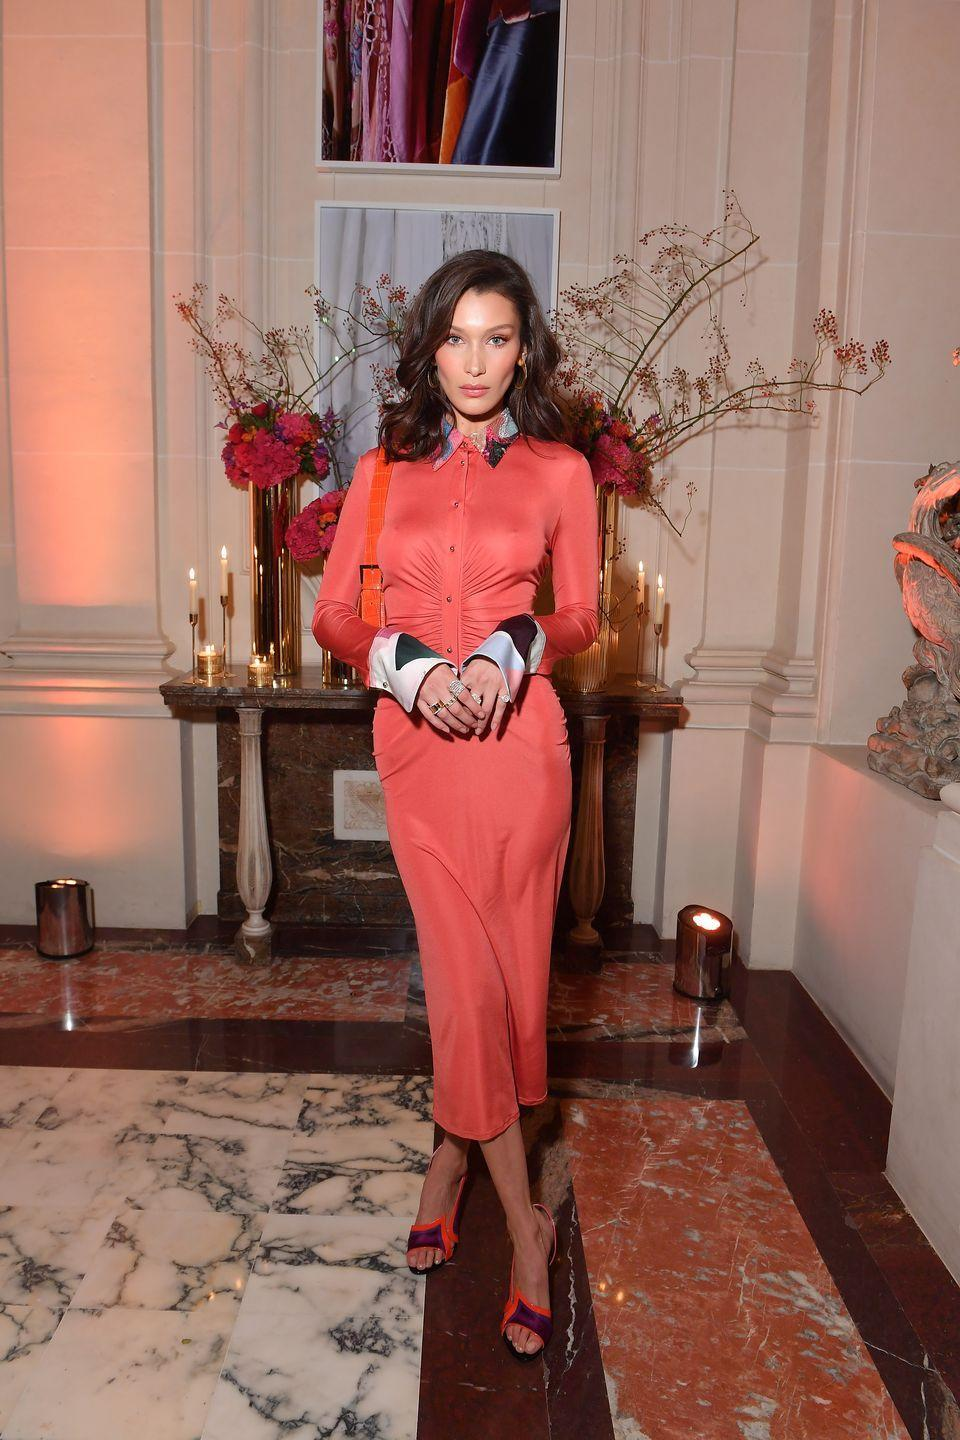 <p>The model wore an Emilio Pucci dress to the event in Paris, September 2018.</p>